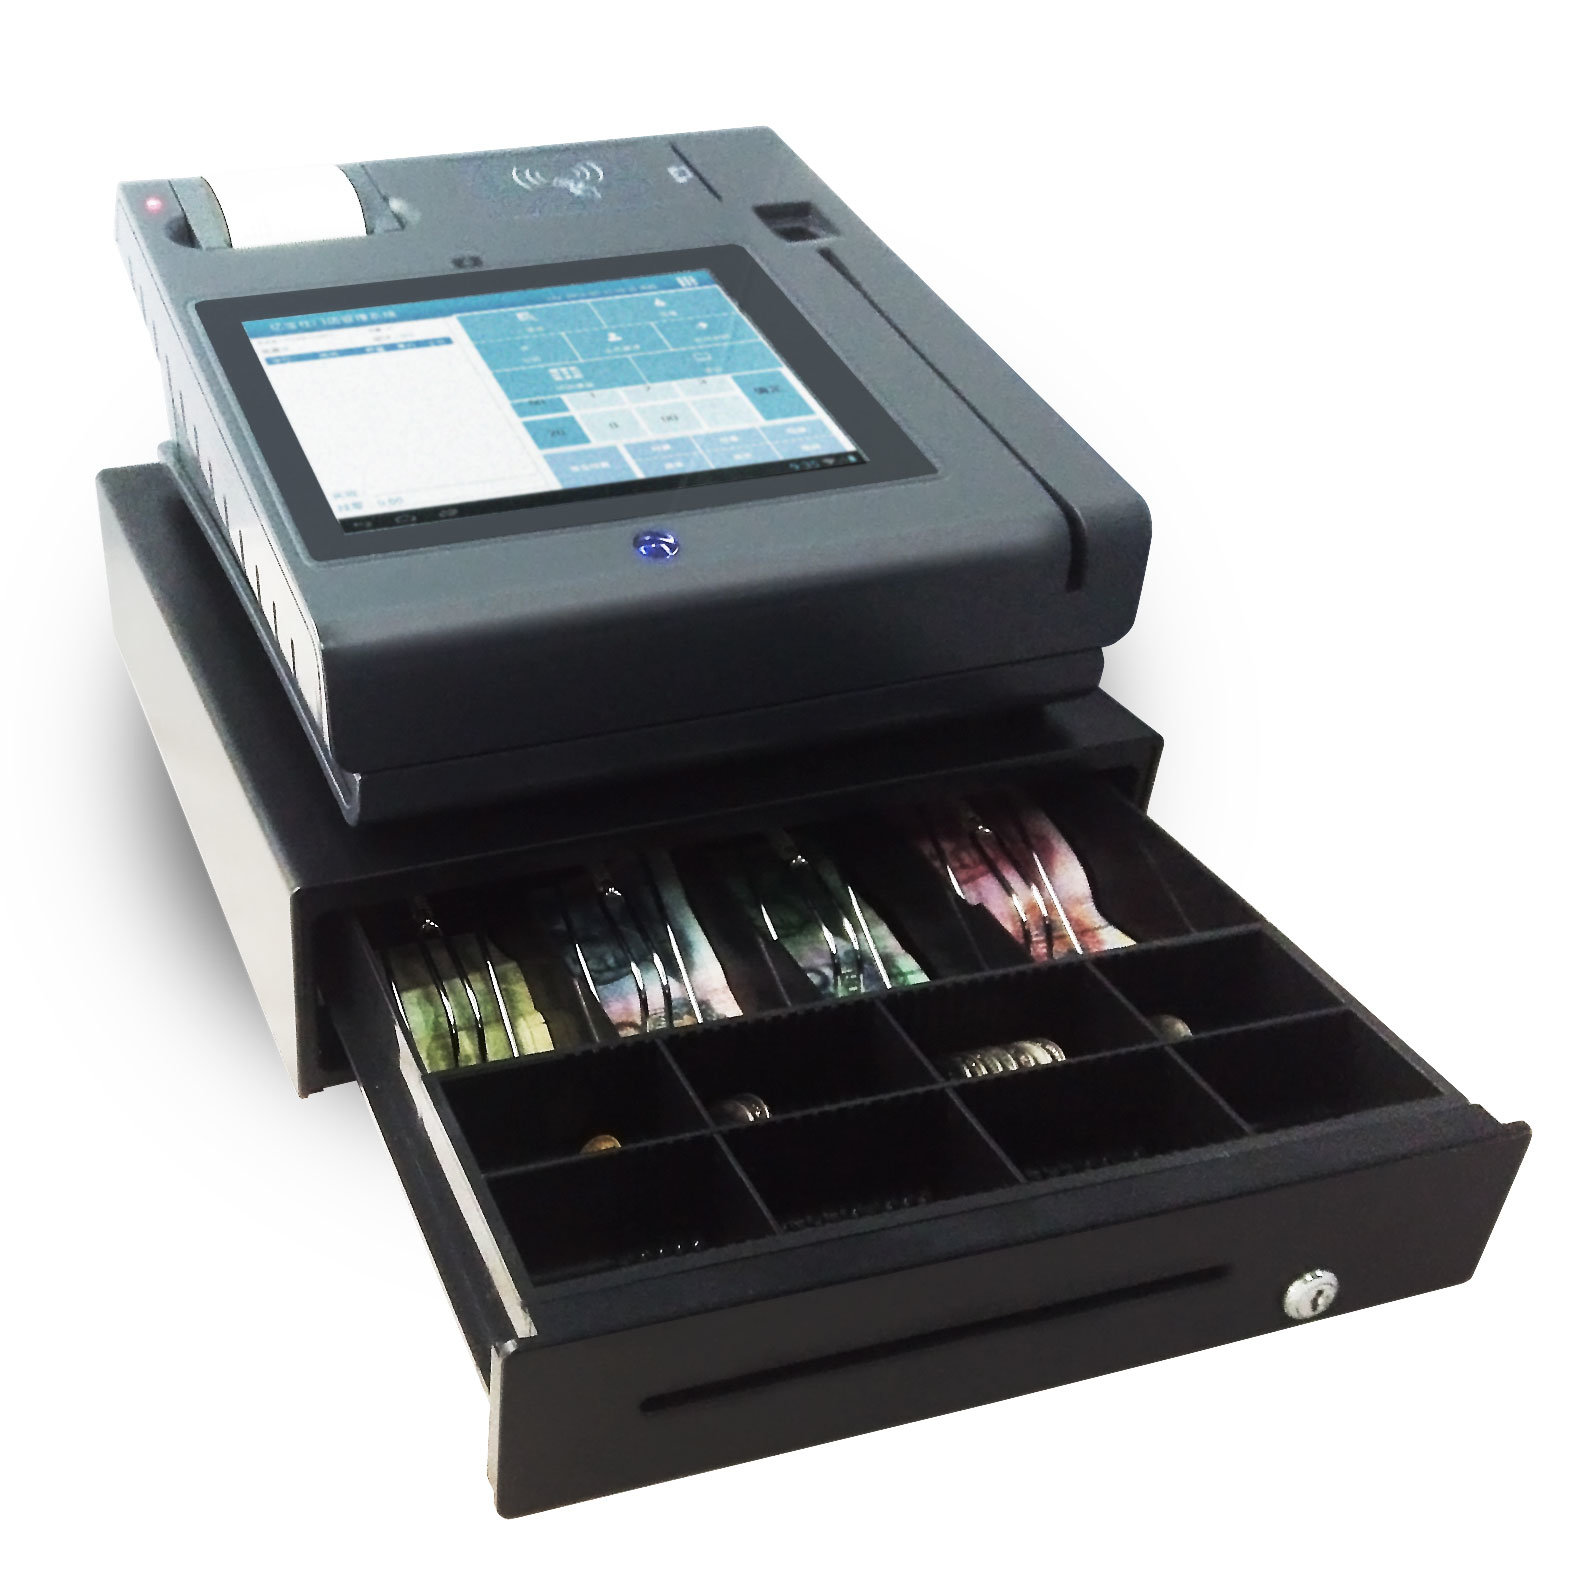 Restaurant POS with Printer and Cash Register